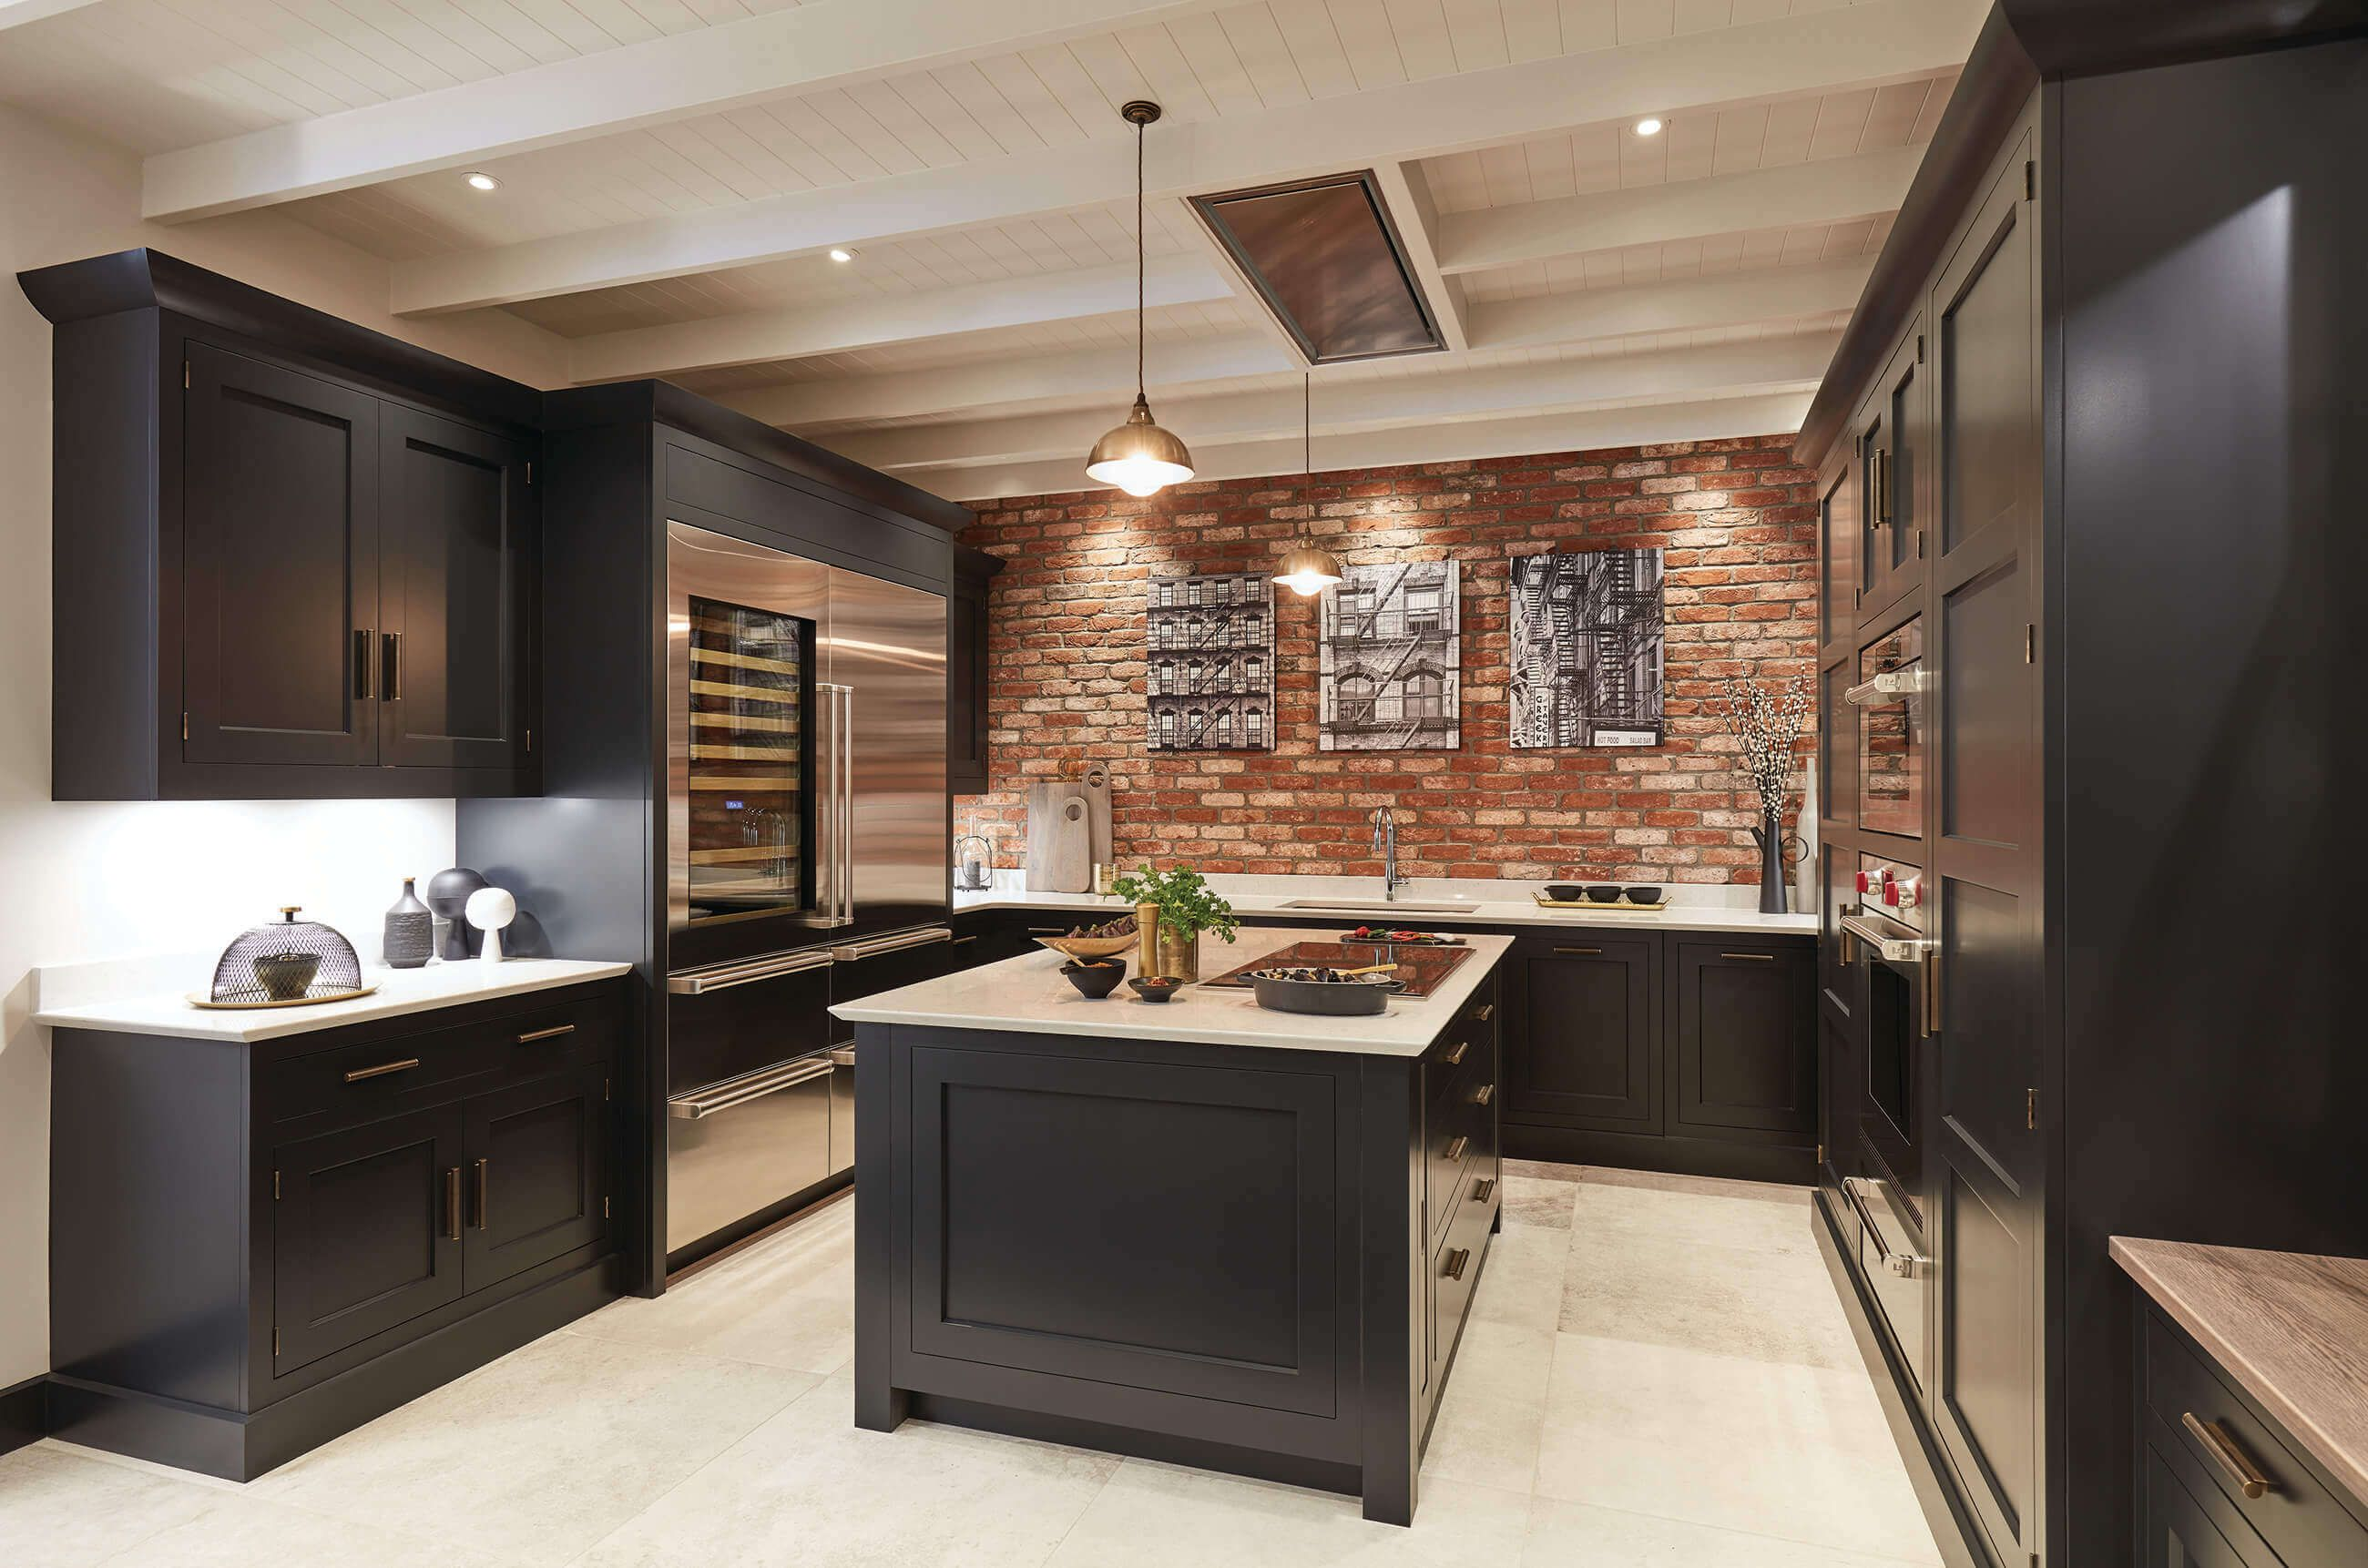 This Open Plan Kitchen Is The Perfect Space For Family